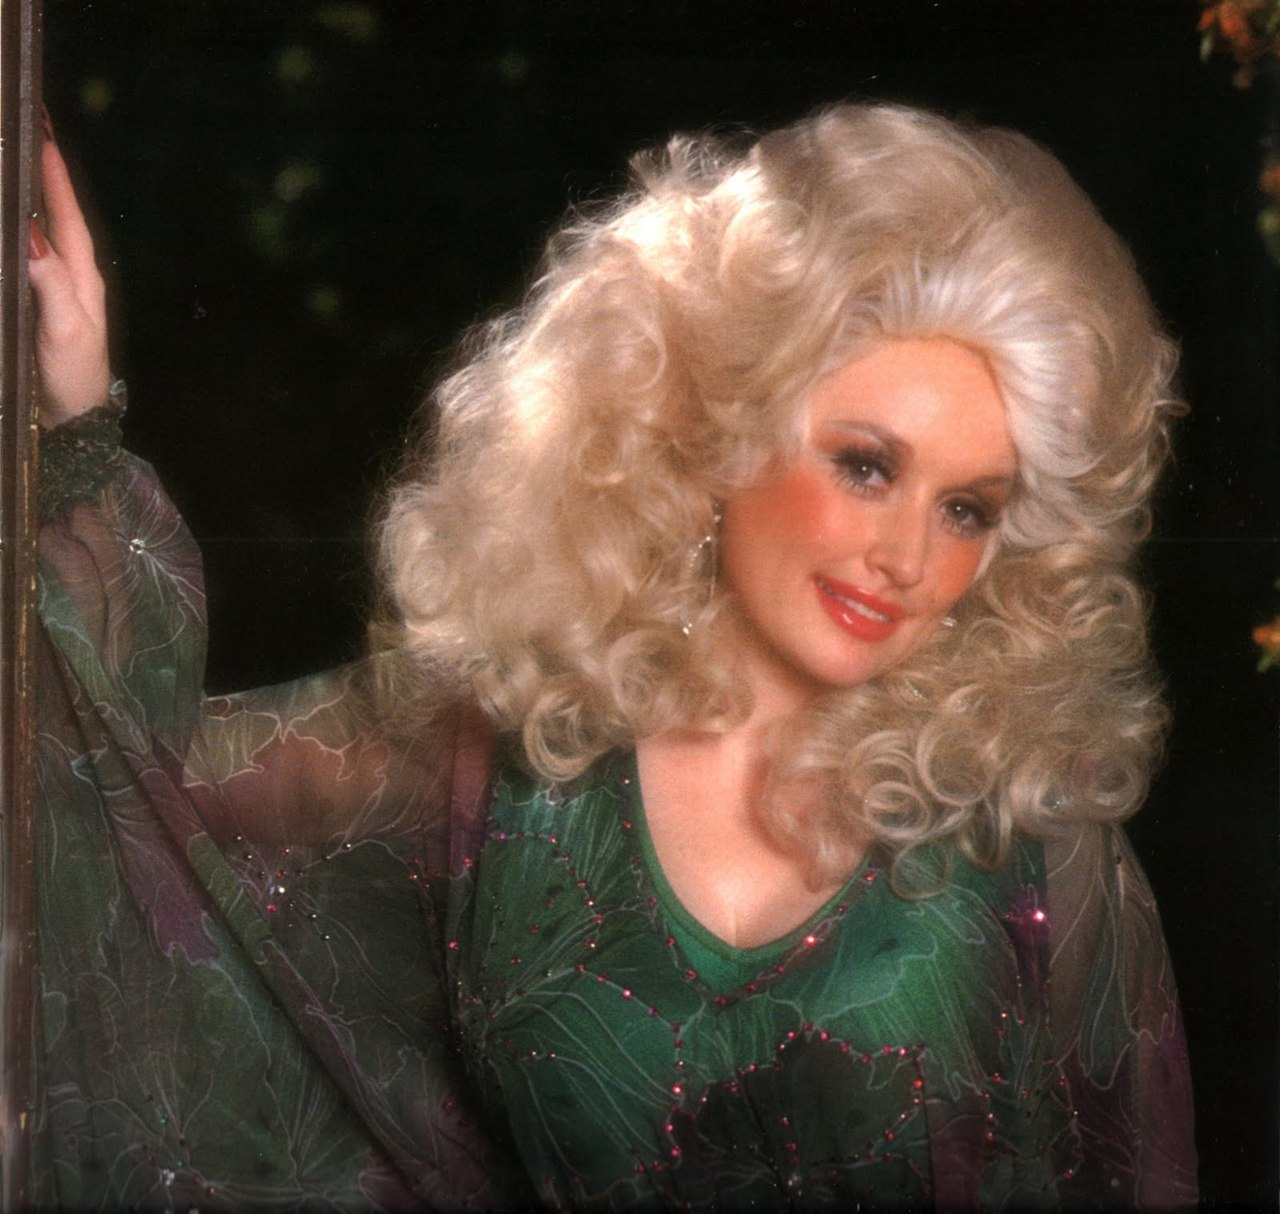 The hair hall of fame happy birthday dolly parton dolly parton turns 66 years old today publicscrutiny Choice Image